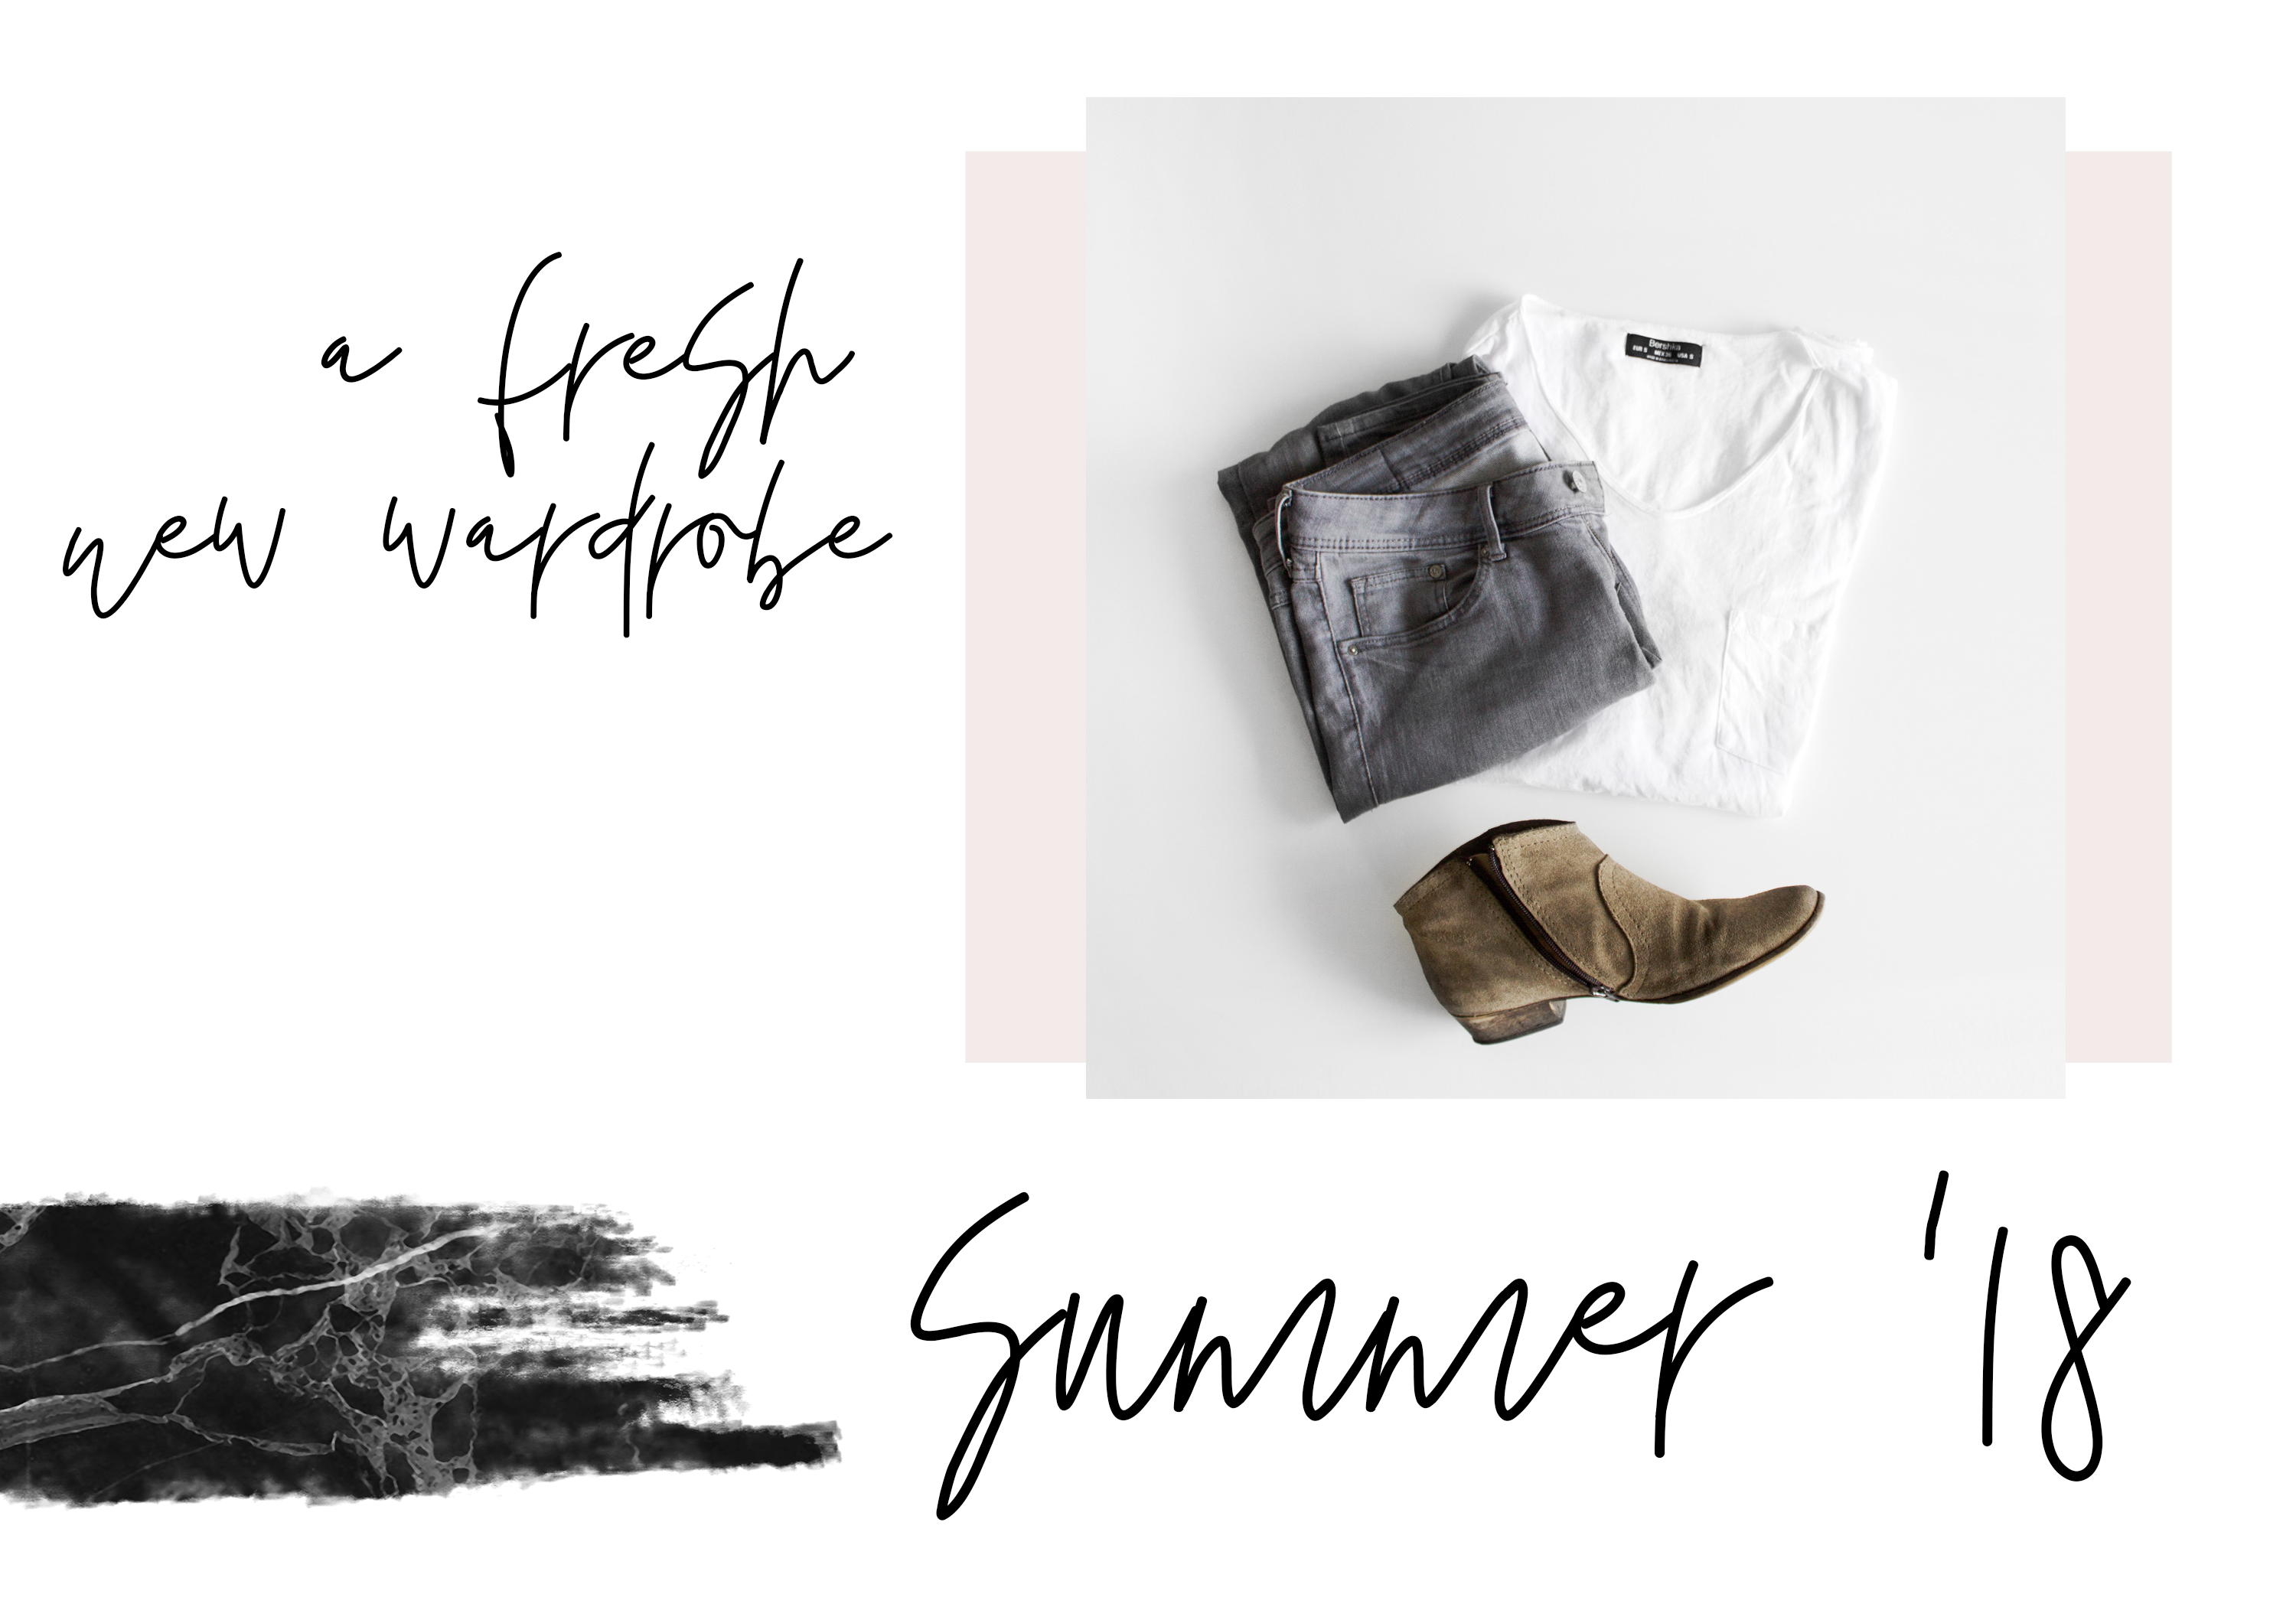 Salt Water - Handwritten Chic Font example image 8